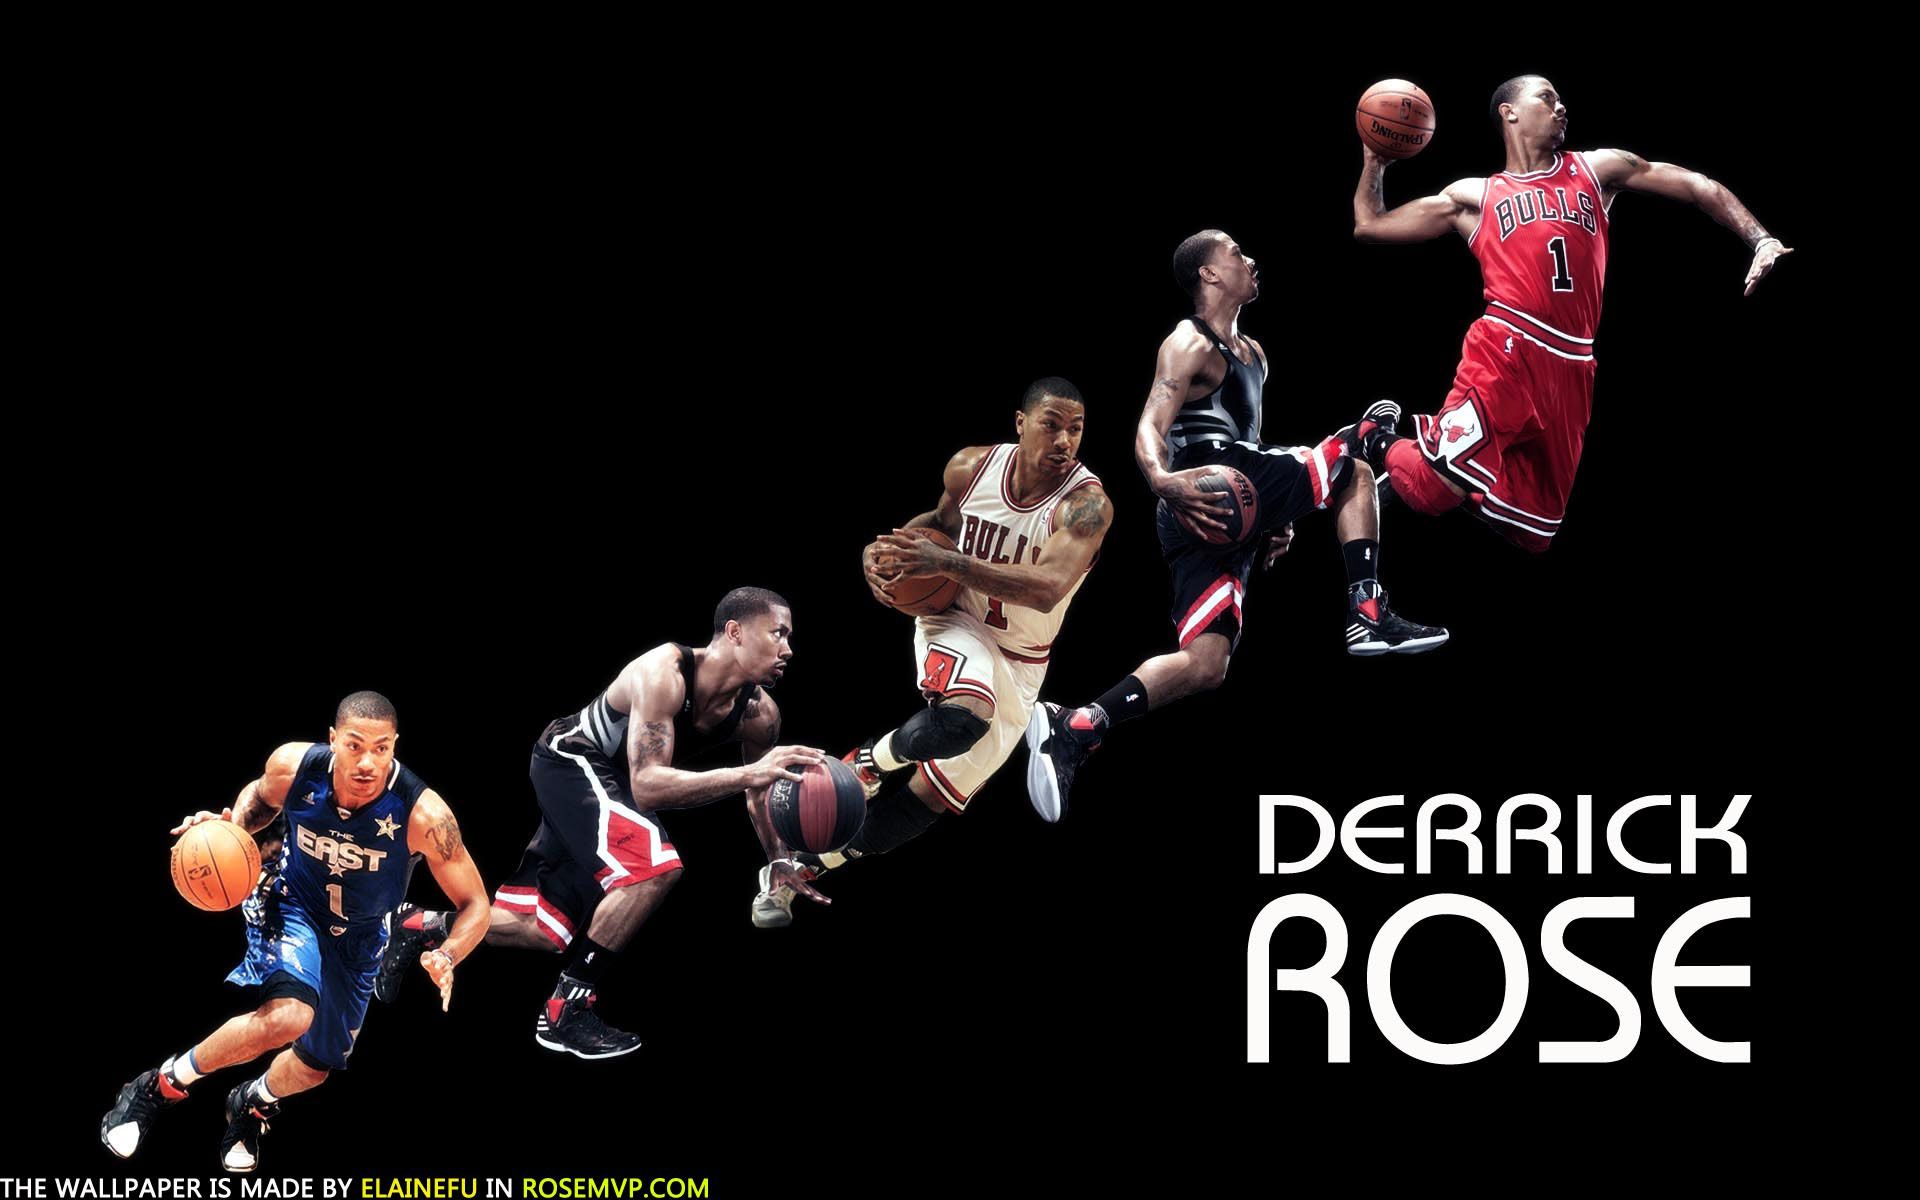 Derrick Rose Logo Wallpapers 1920x1200